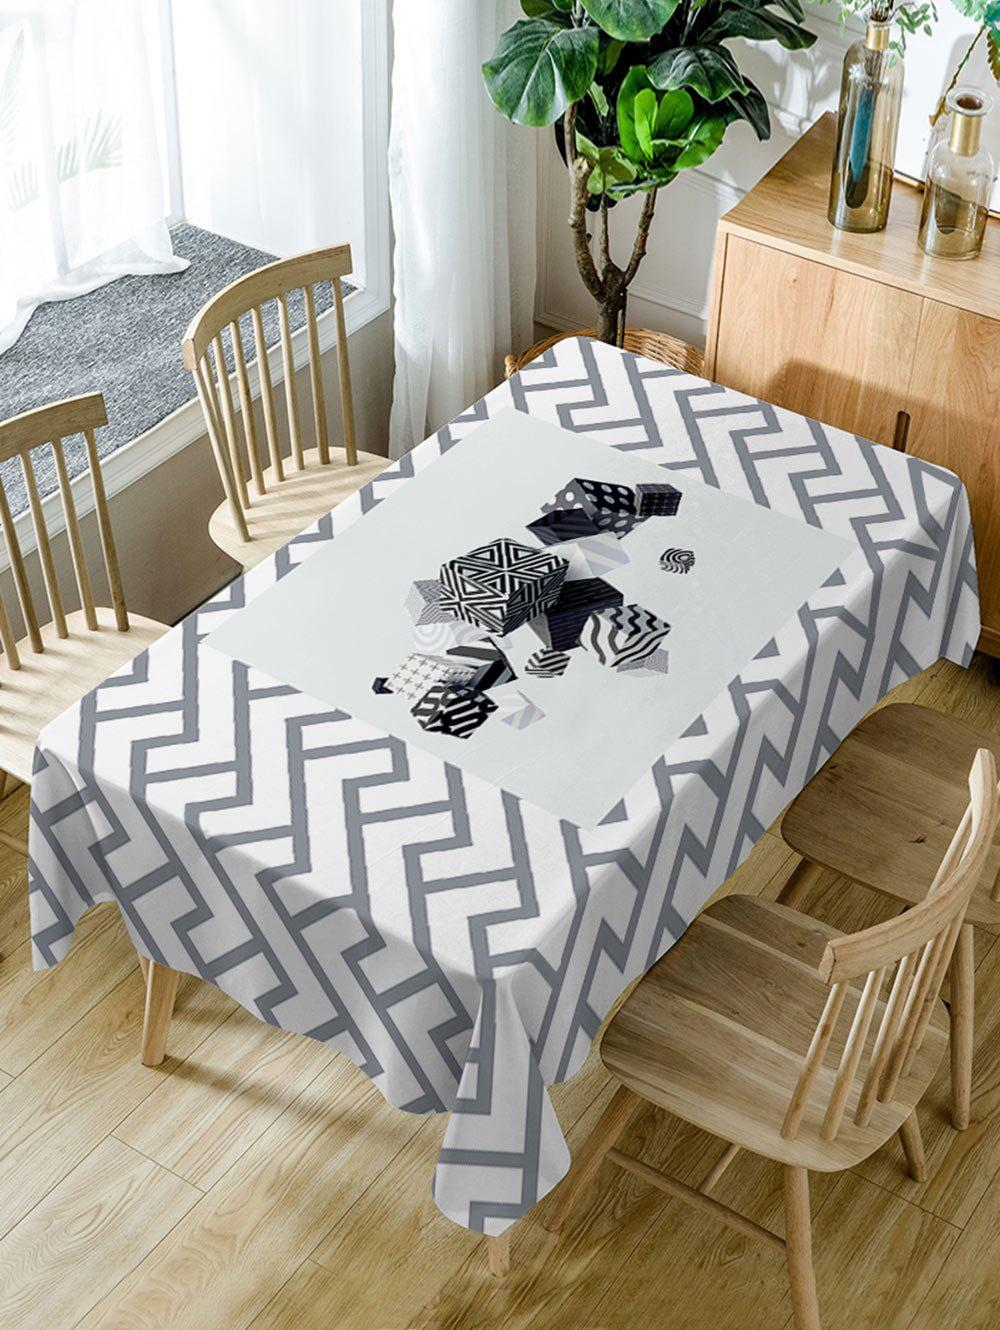 Cube Print Waterproof Table Cloth - WHITE W54 INCH * L72 INCH